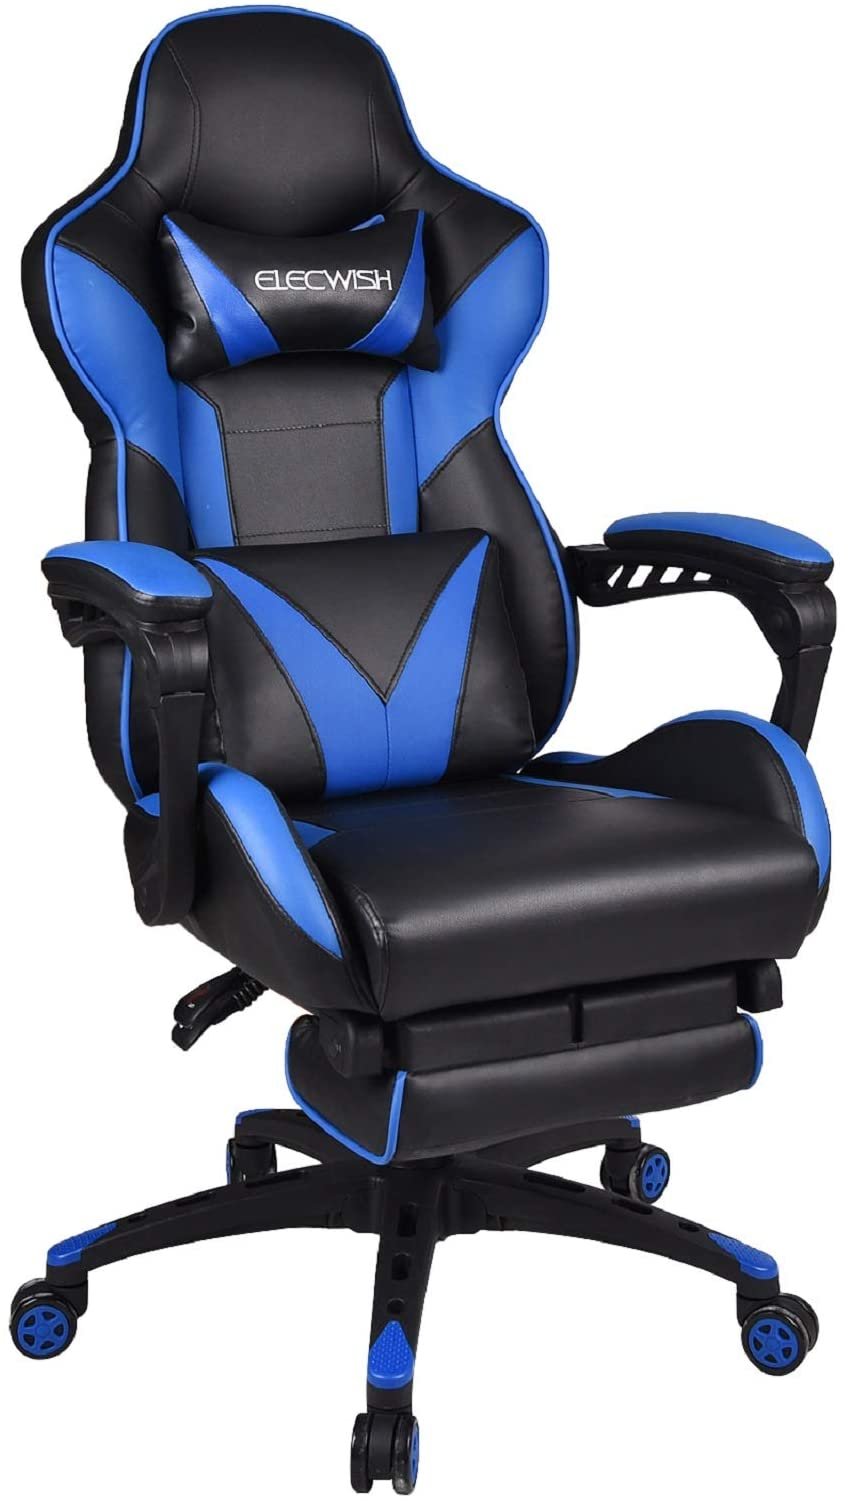 Why Elecwish Gaming Chair Is Awesome